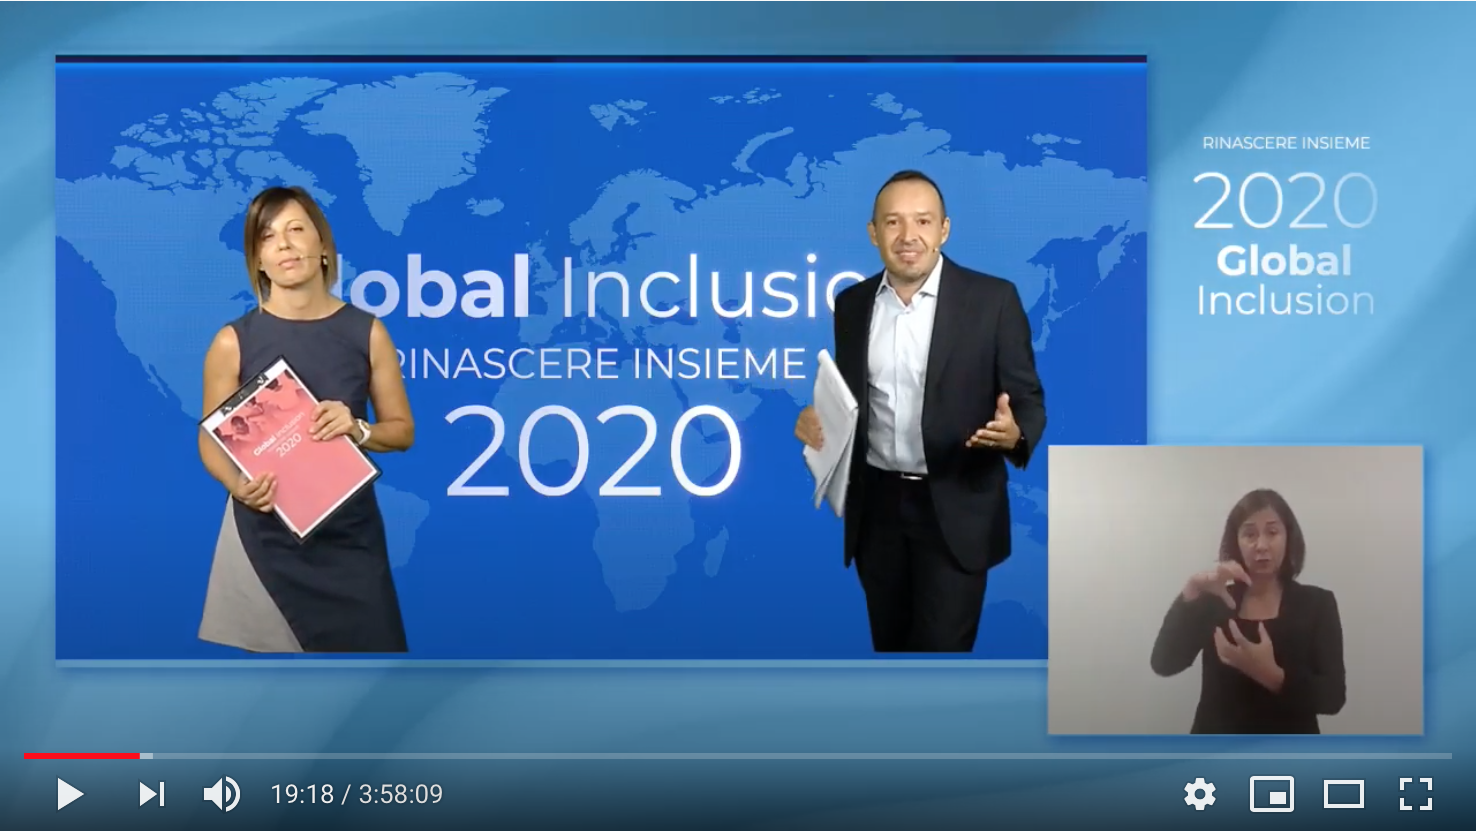 Global Inclusion, Rinascere insieme 2020. Il video dell'evento